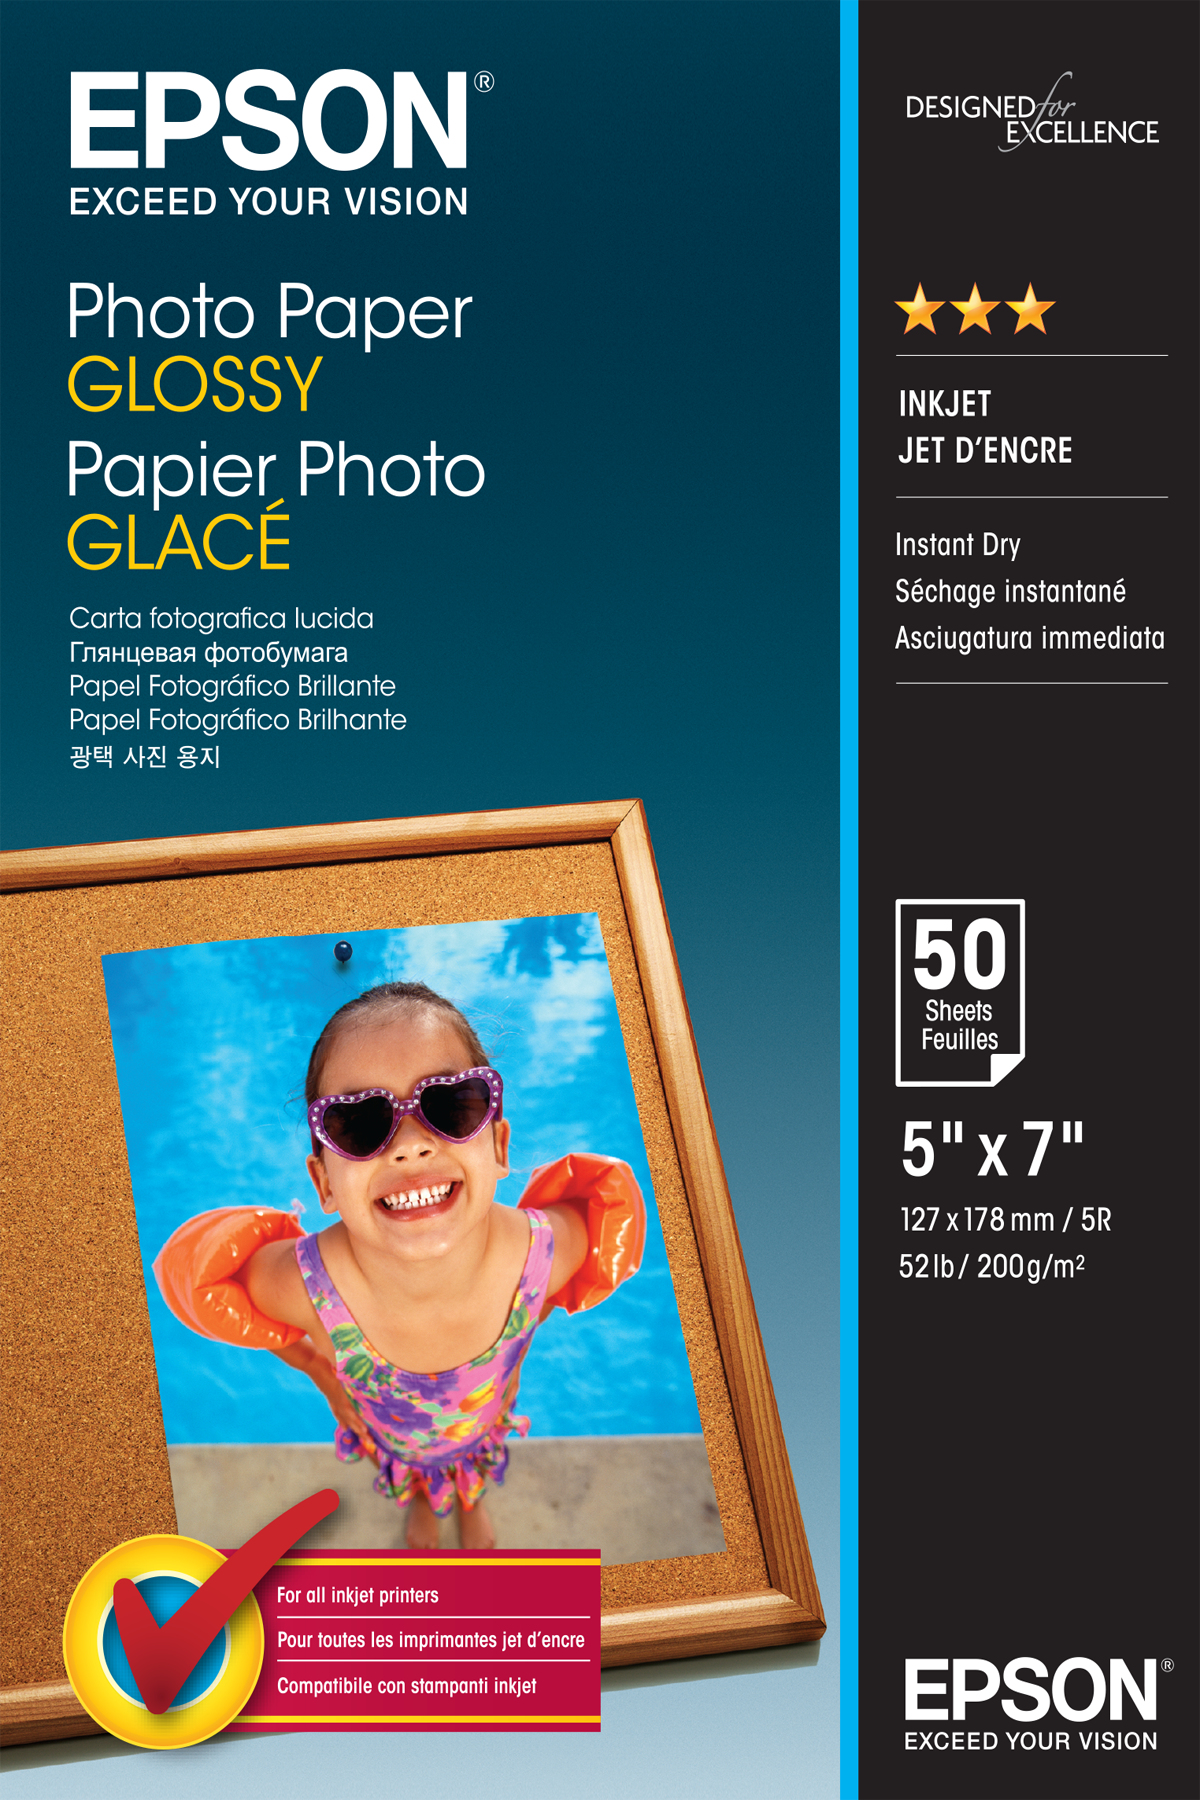 Photo Paper Glossy 13x18cm 50 Sheet C13s042545 - WC01